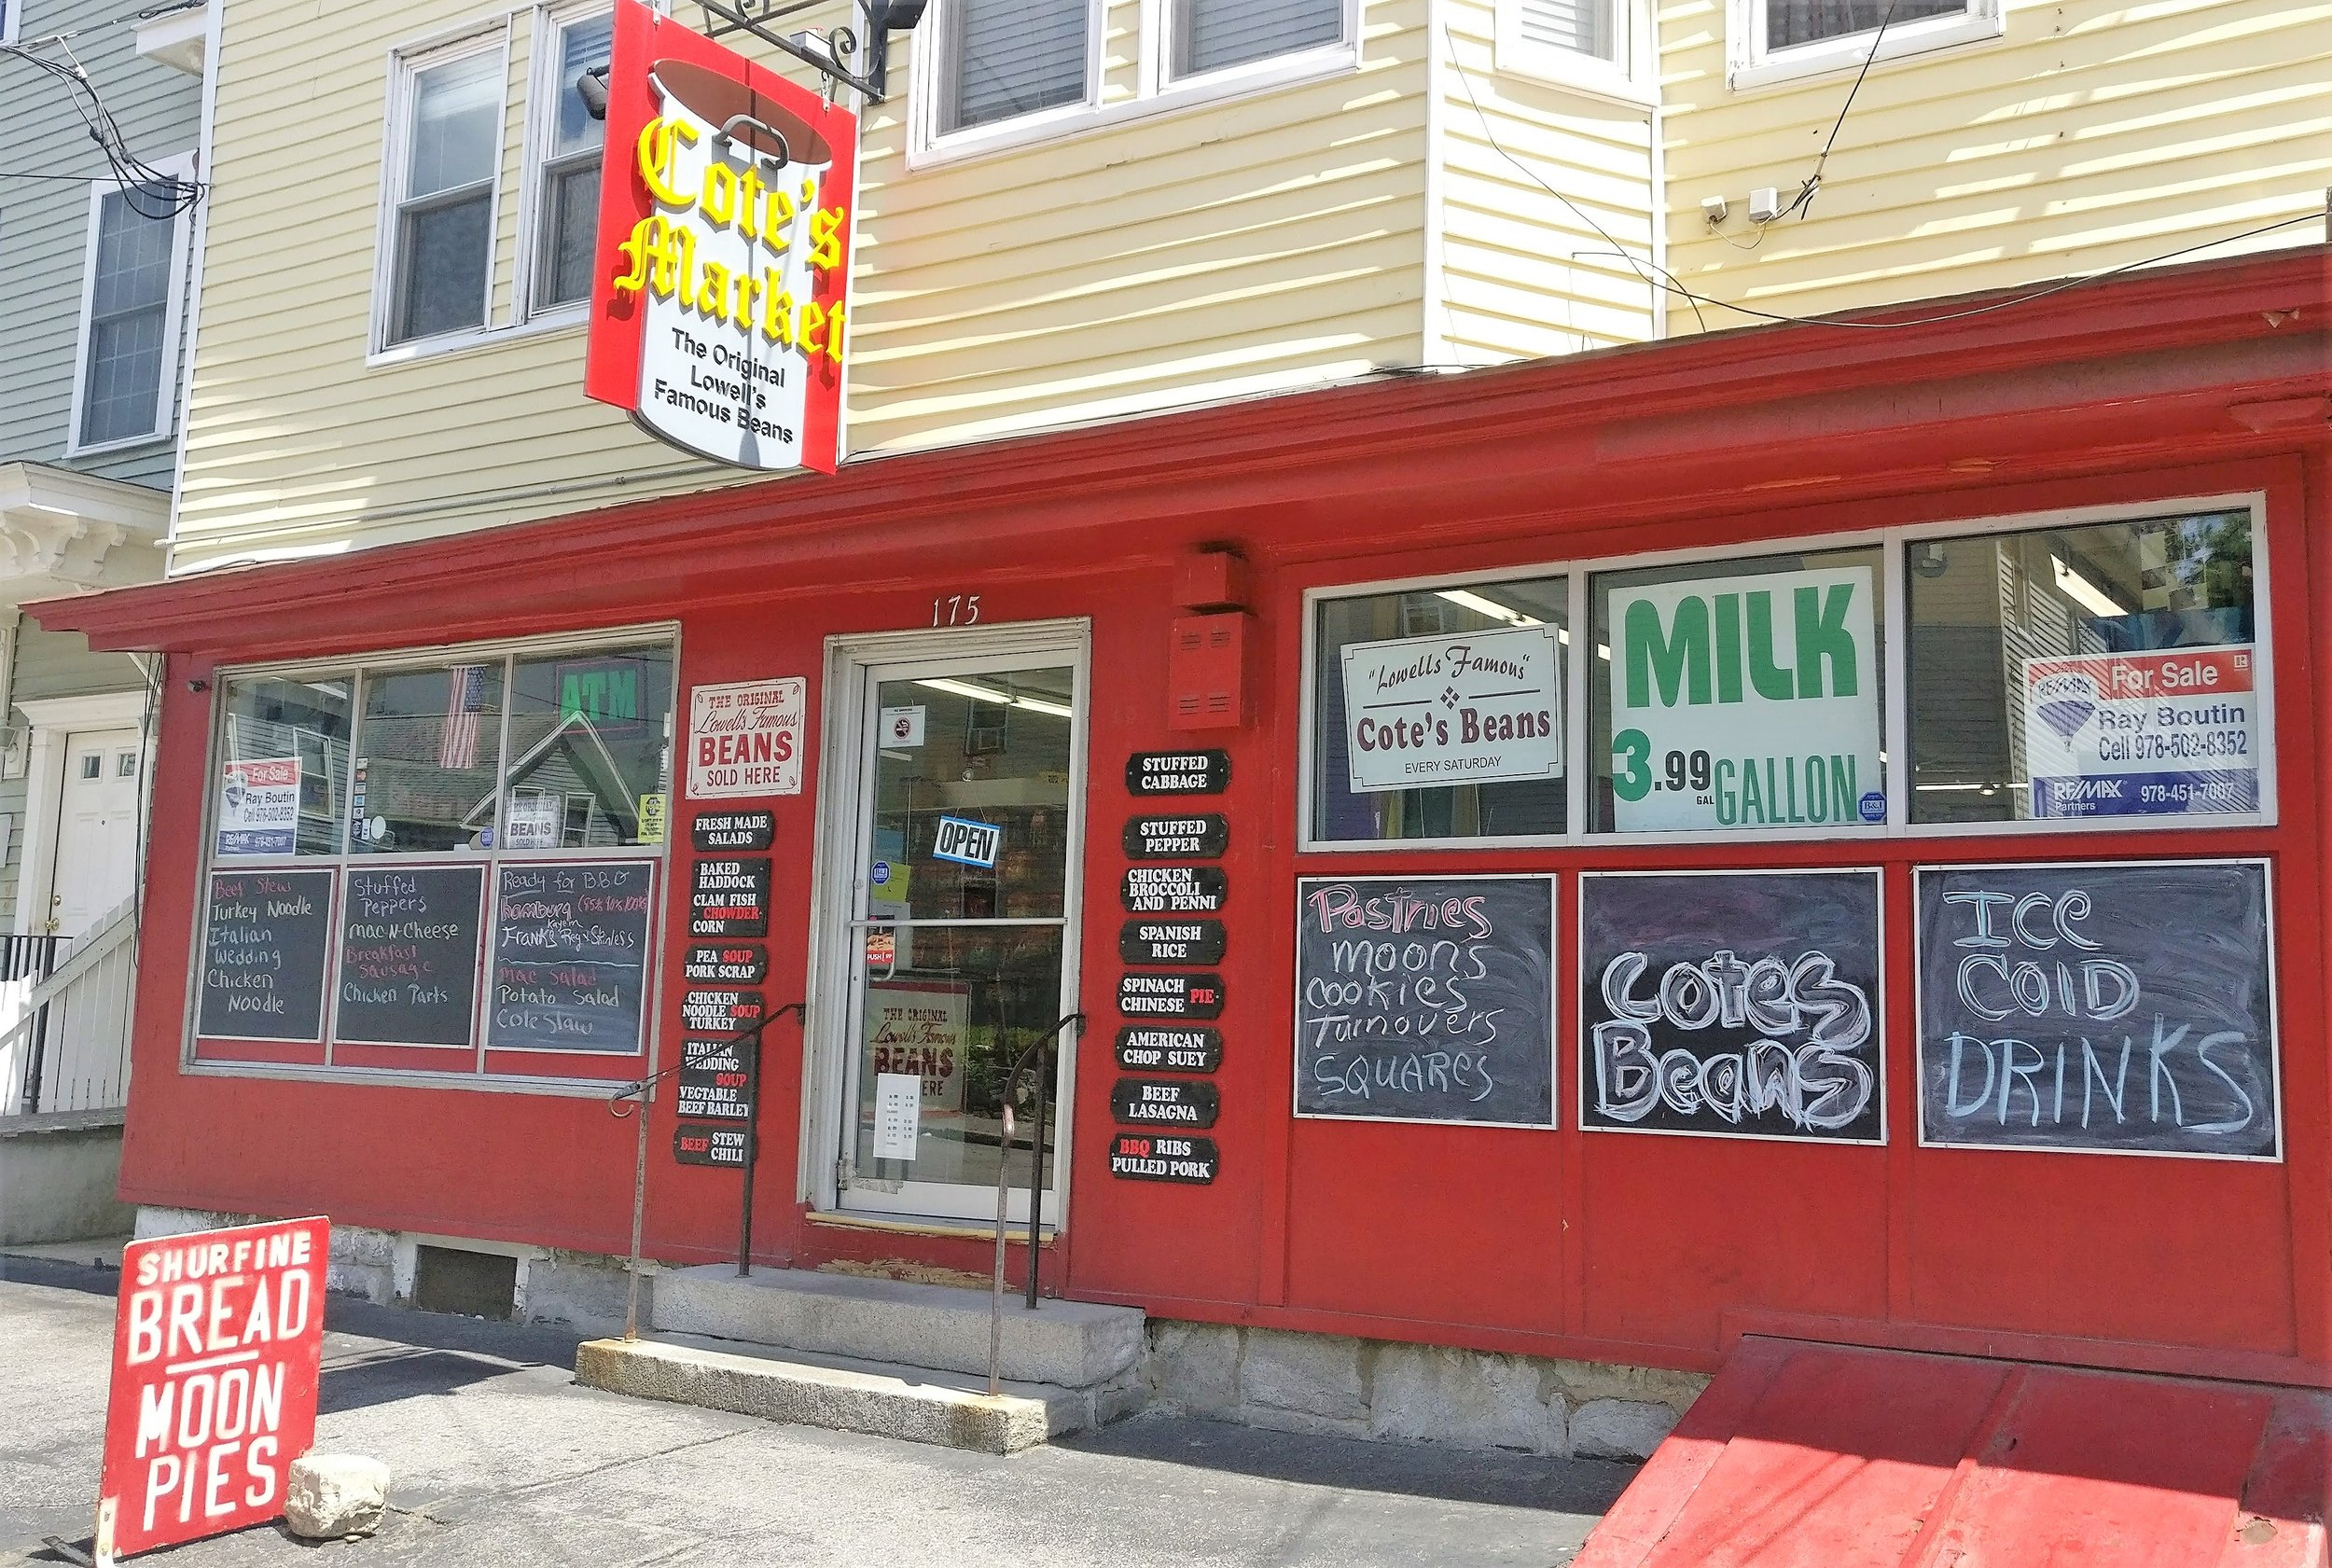 Cote's Market in the Acre has been in business for more than 100 years